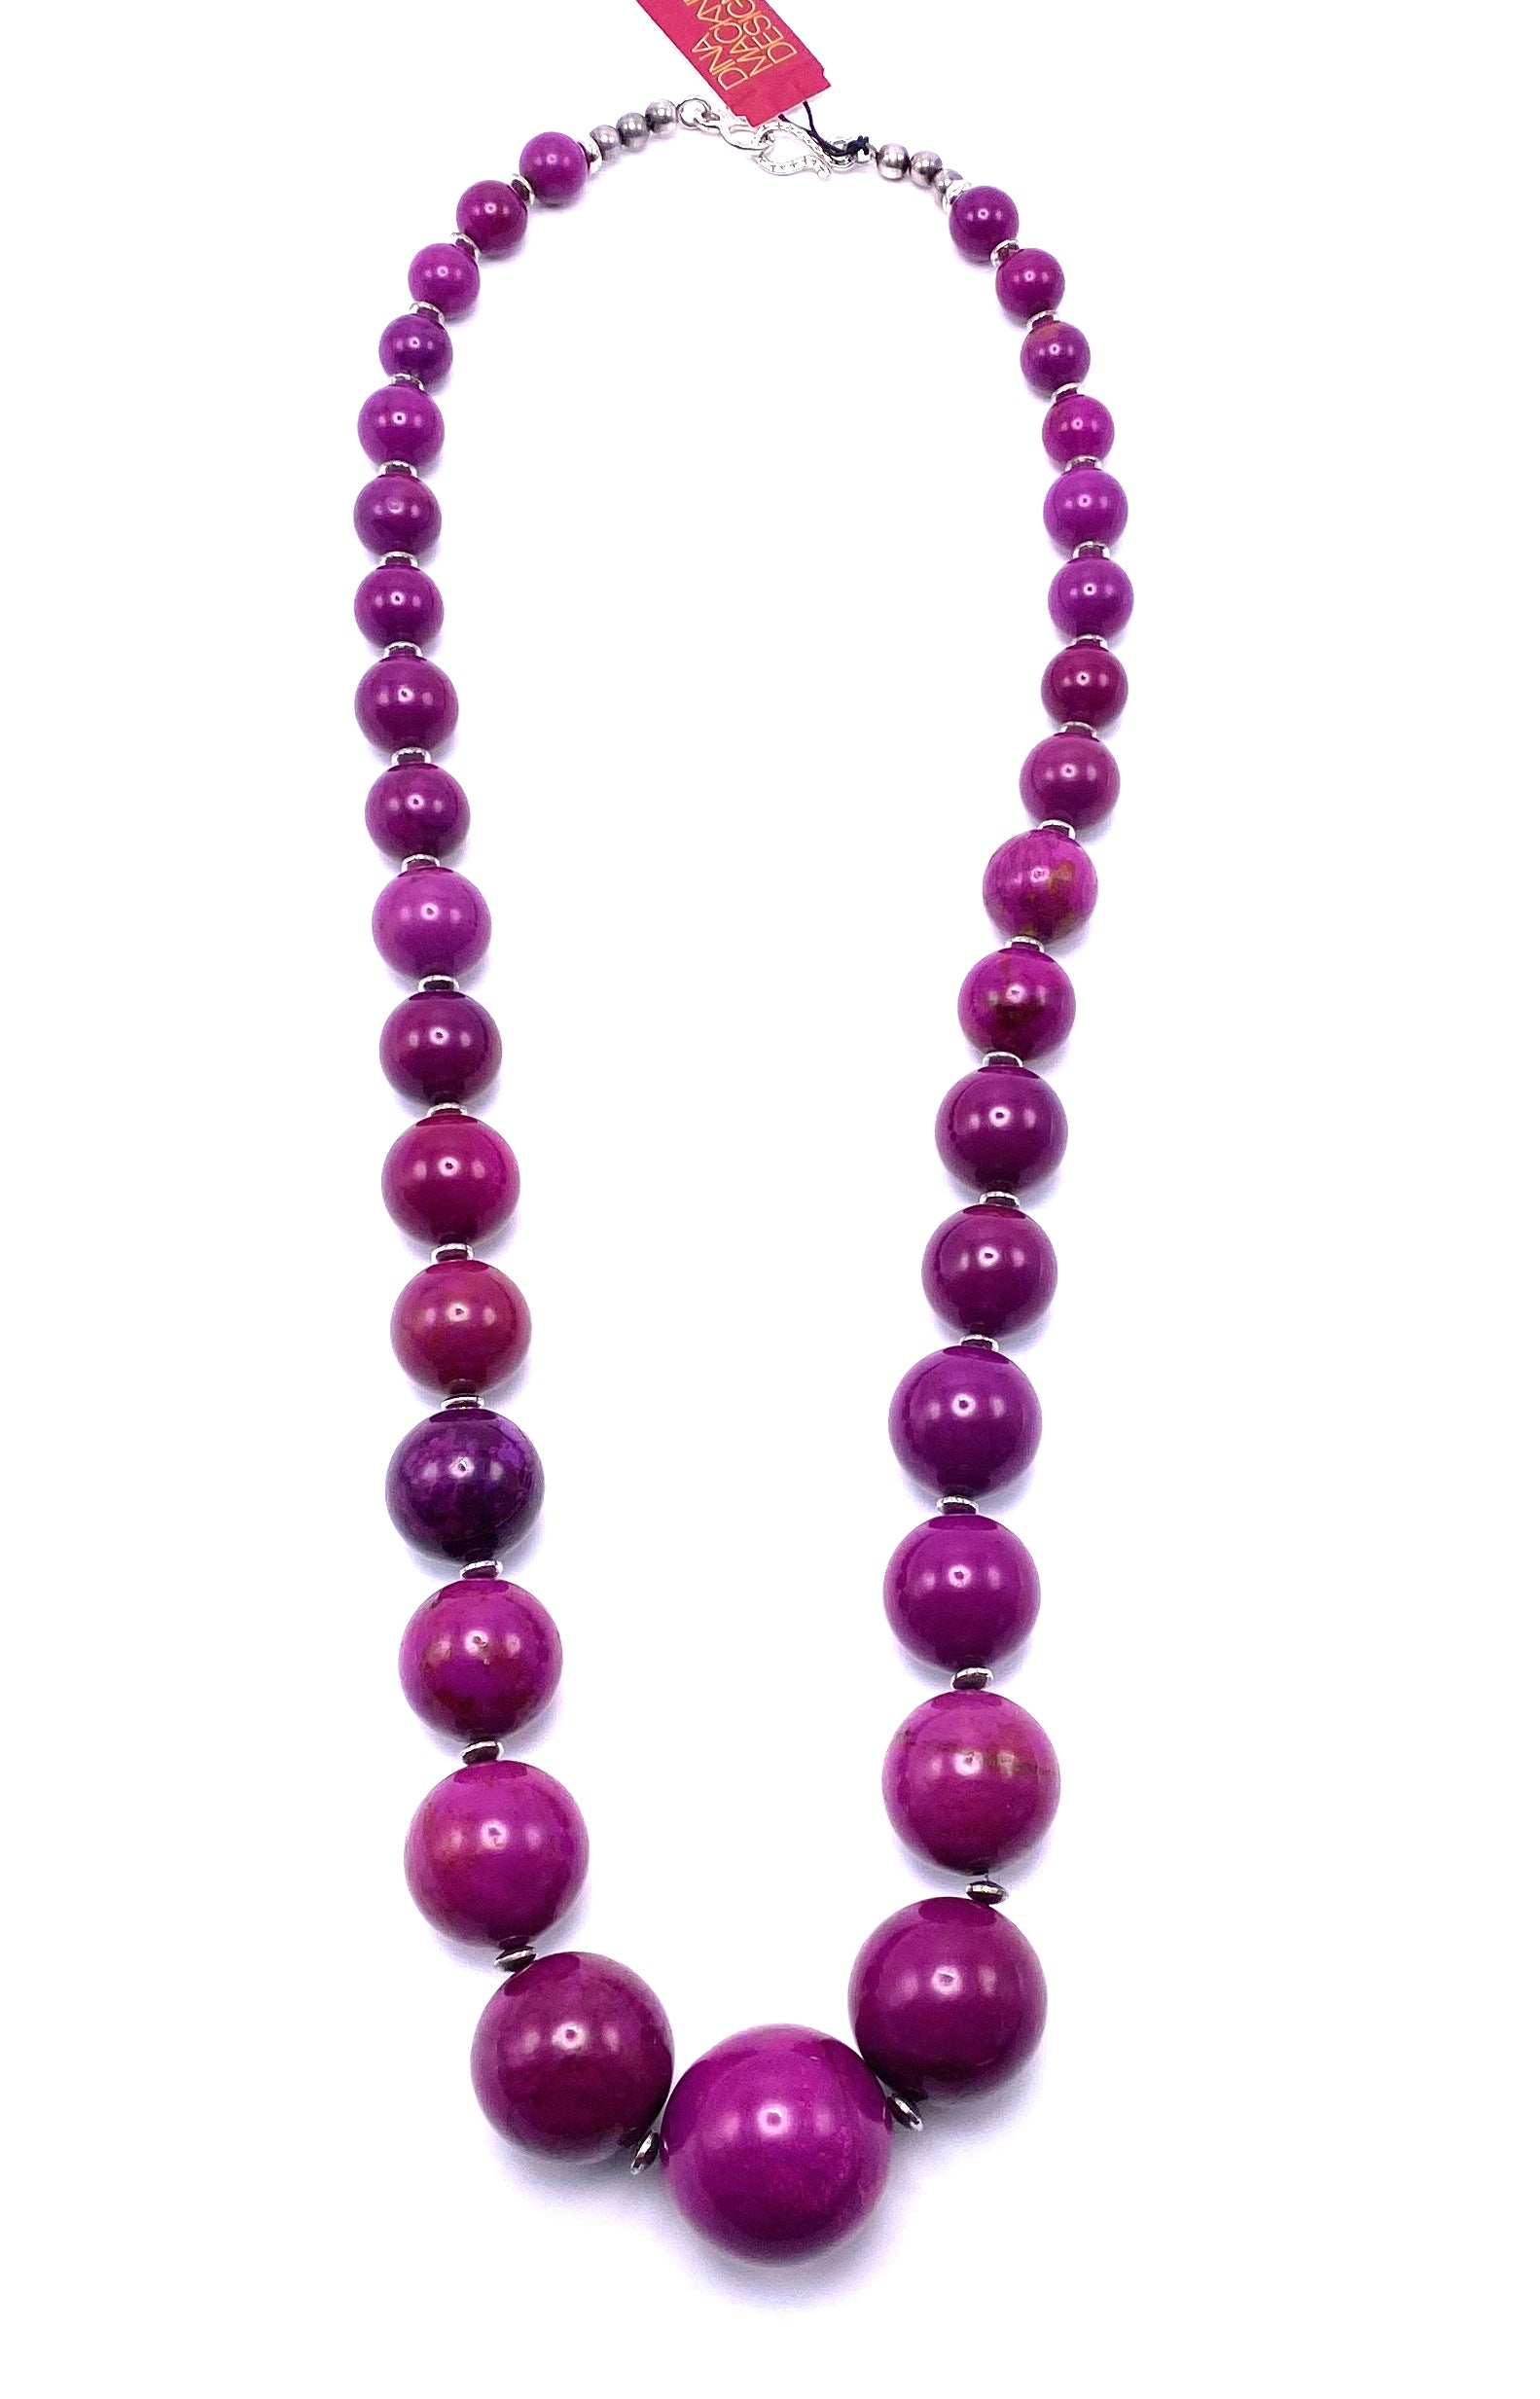 Vibrant Alunite Necklace